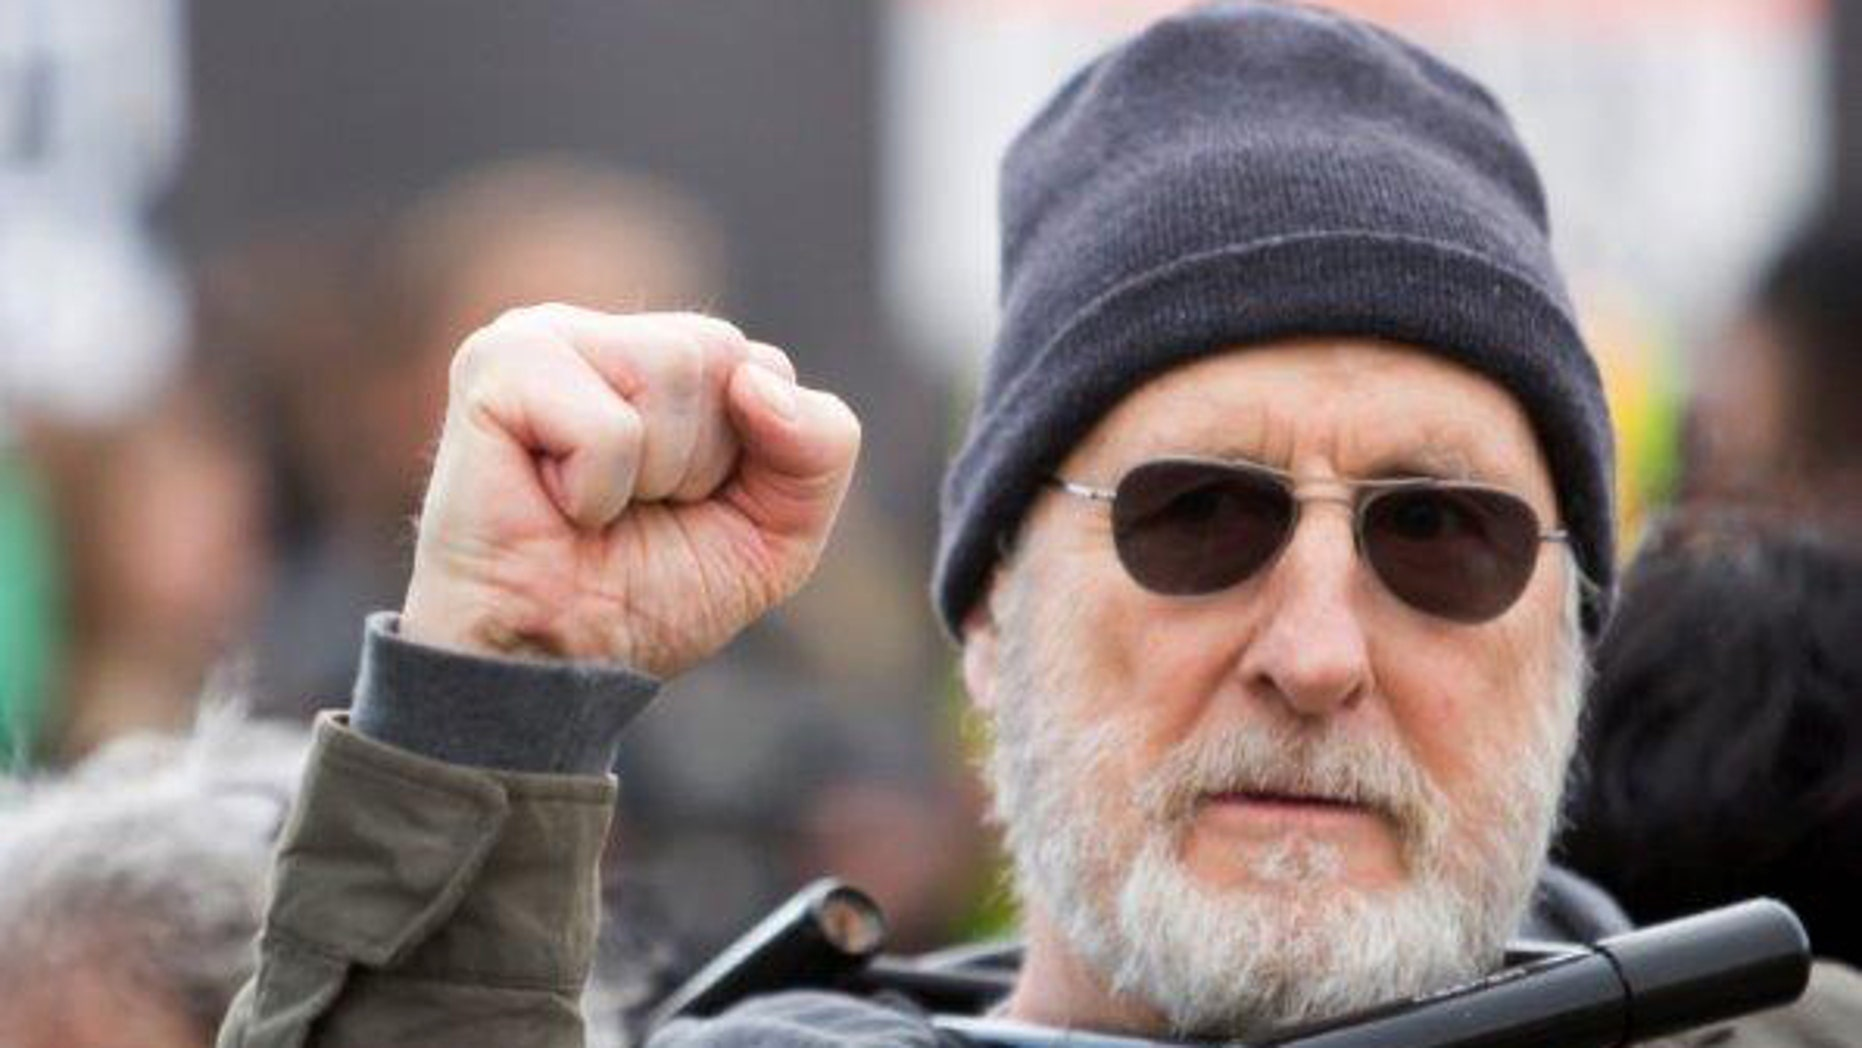 December 18, 2015. James Cromwell protests at a power plant that is under construction in Wawayanda, N.Y.